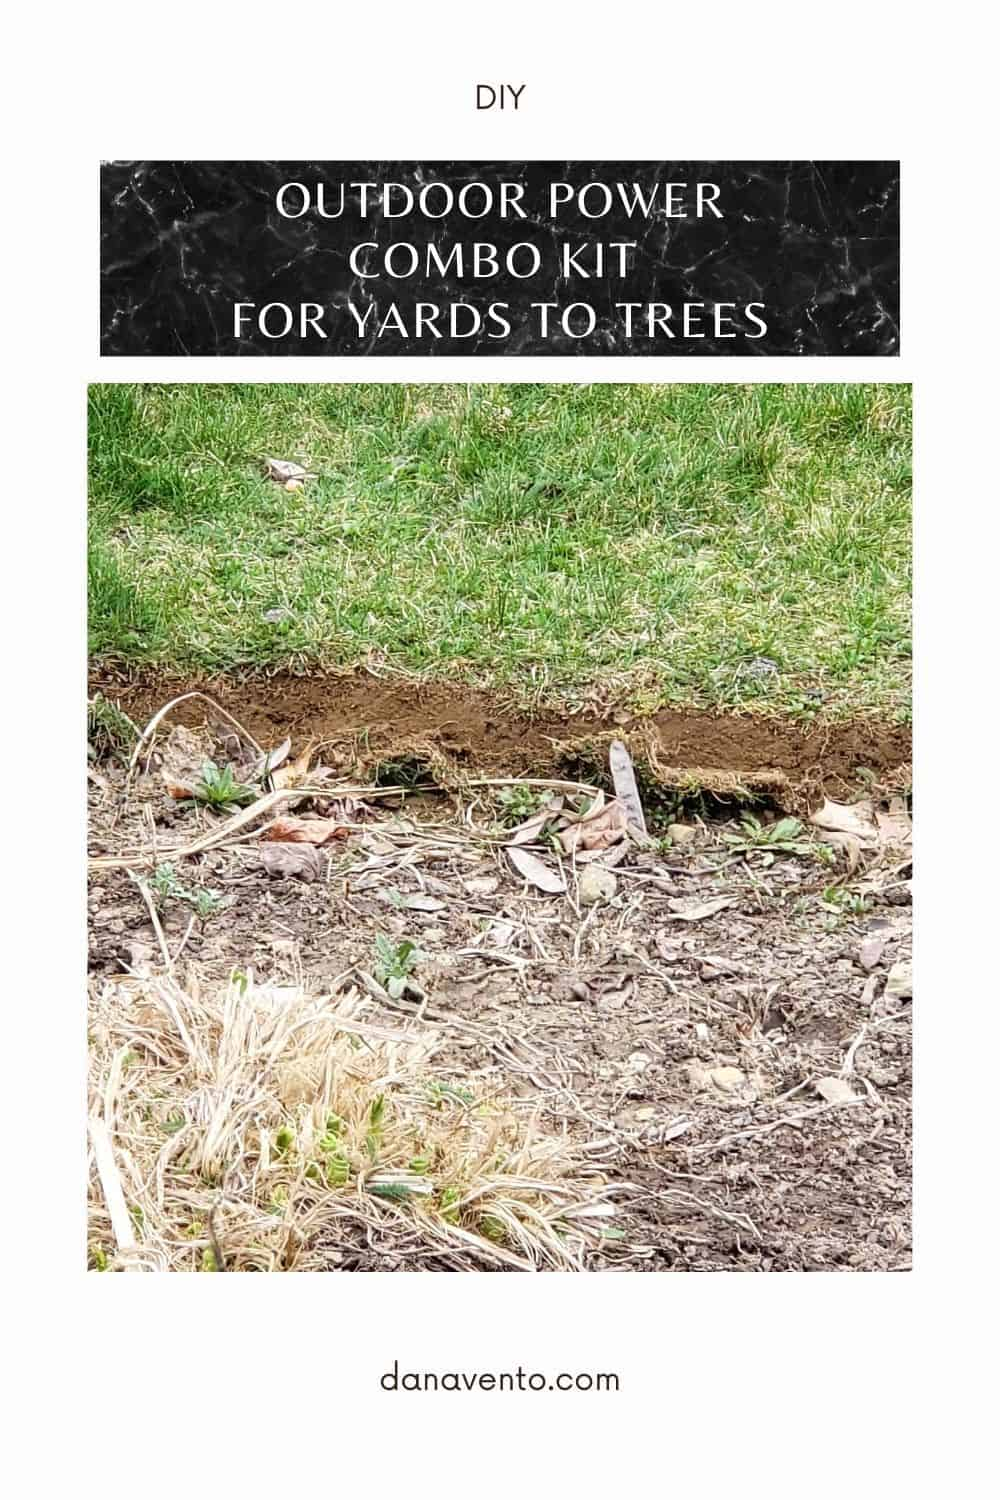 EDGING Outdoor Power Combo Kit for yards to trees